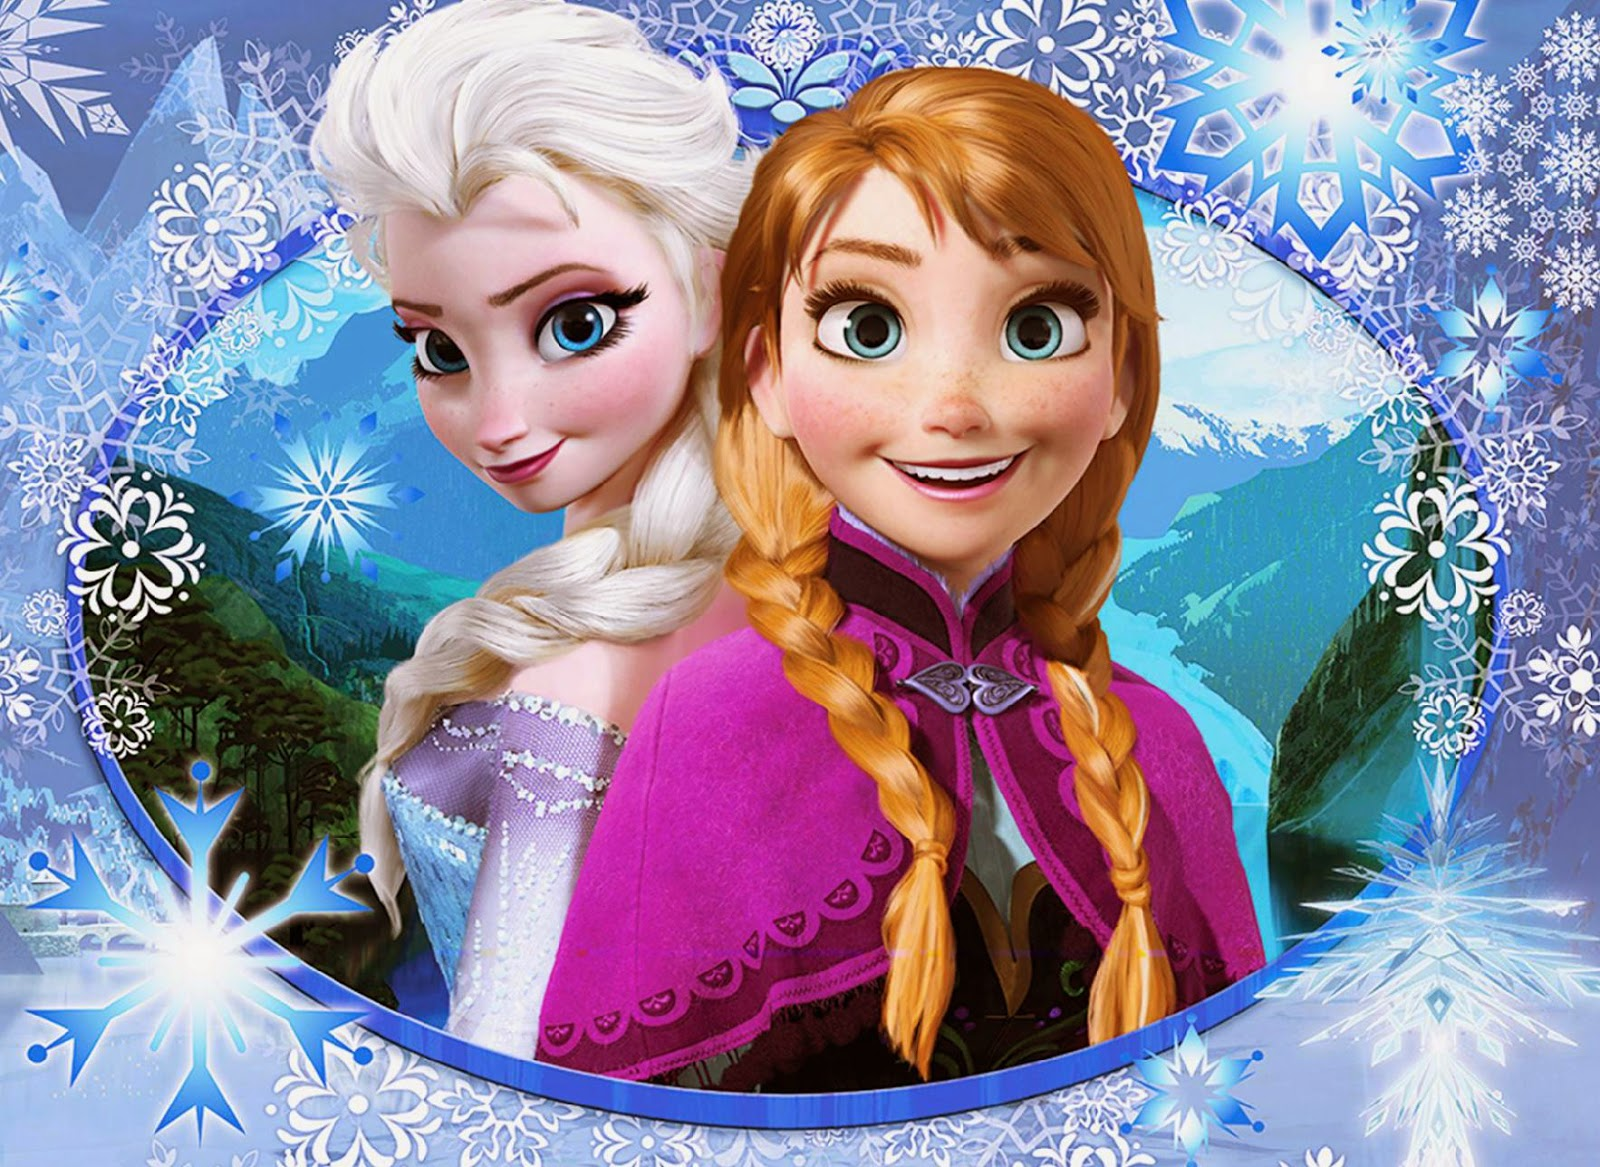 frozen fever wallpaper hd gambar lucu terbaru cartoon